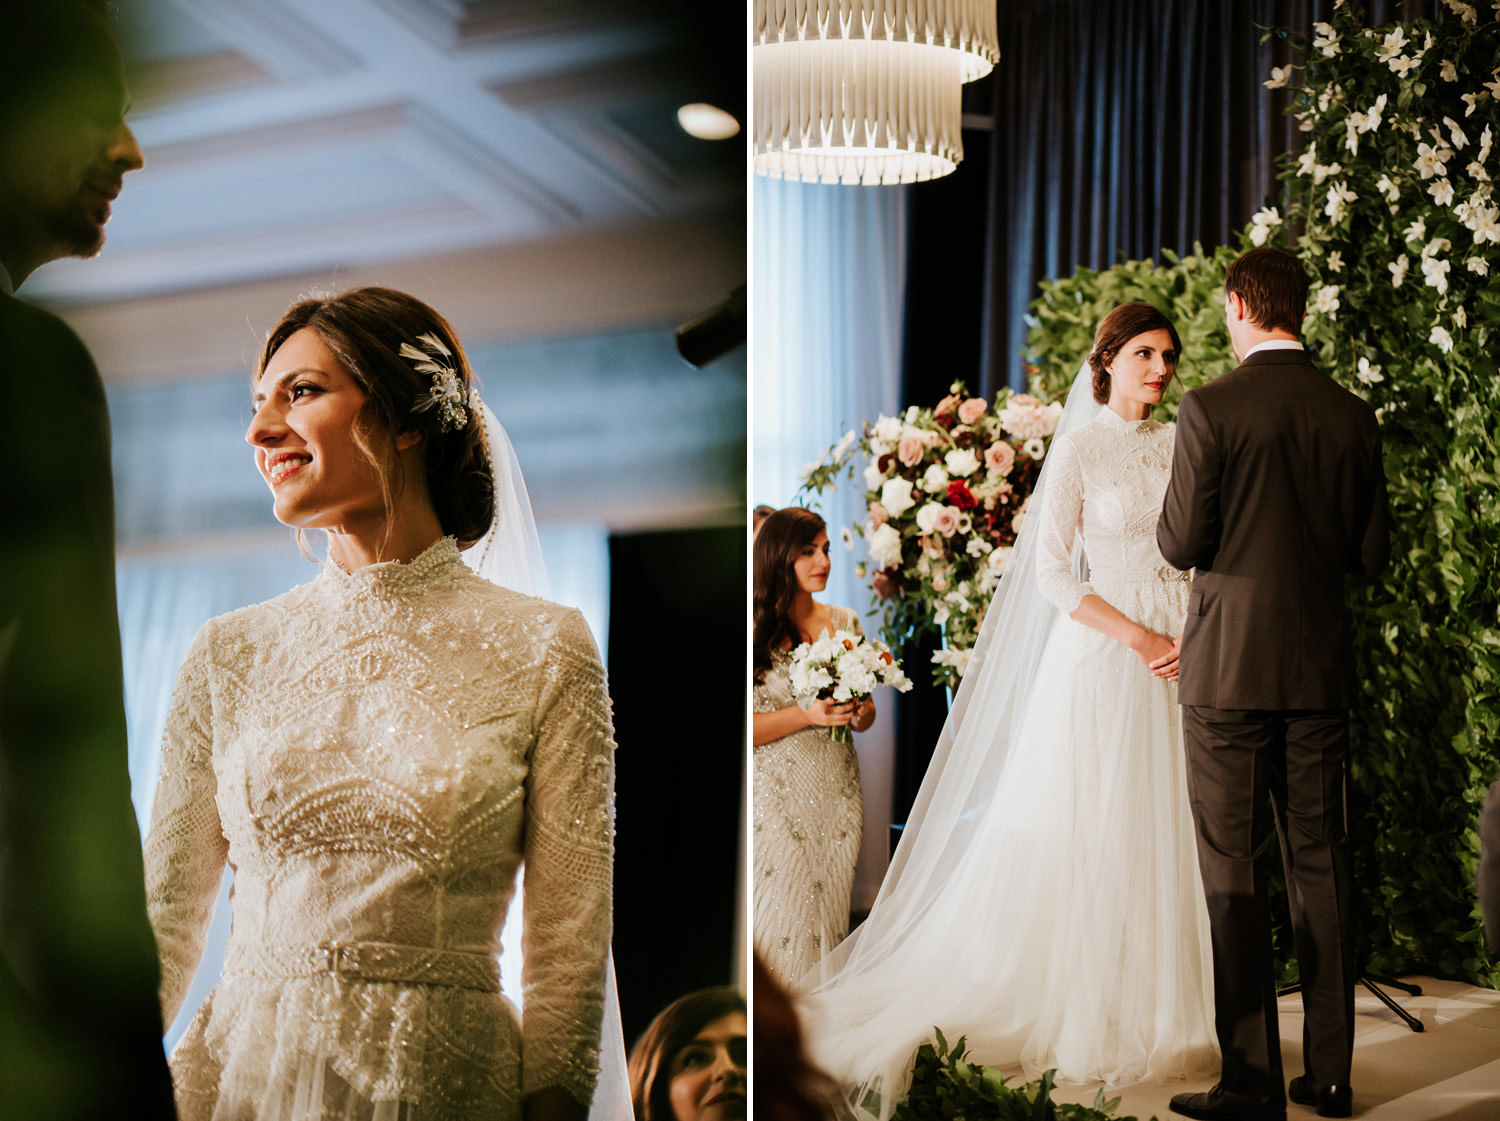 Bride and groom exchange vows during their wedding ceremony at hotel gray in Chicago